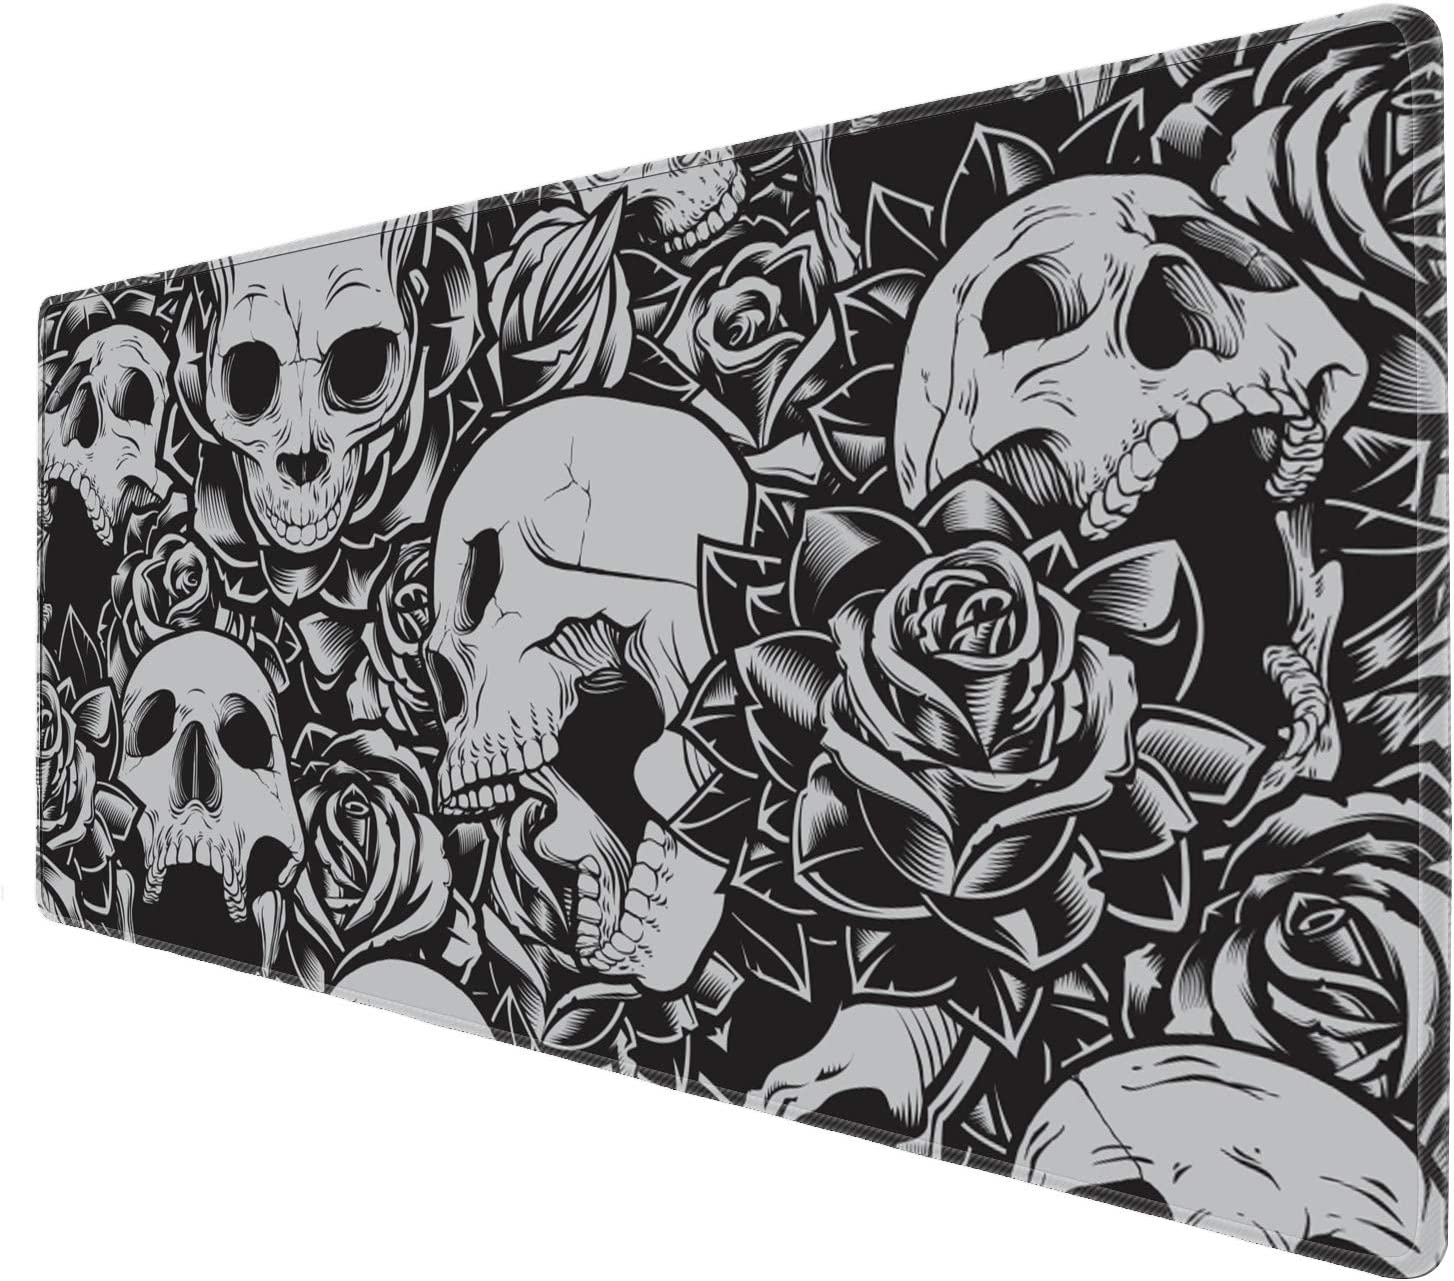 Cholaty Large Mouse Pad XXL Custom Black Skull Computer Game Mouse Mat Desk Pad Keyboard Mat for Laptop Work & Gaming& Office & Home (31.5×11.8×0.15 inch)